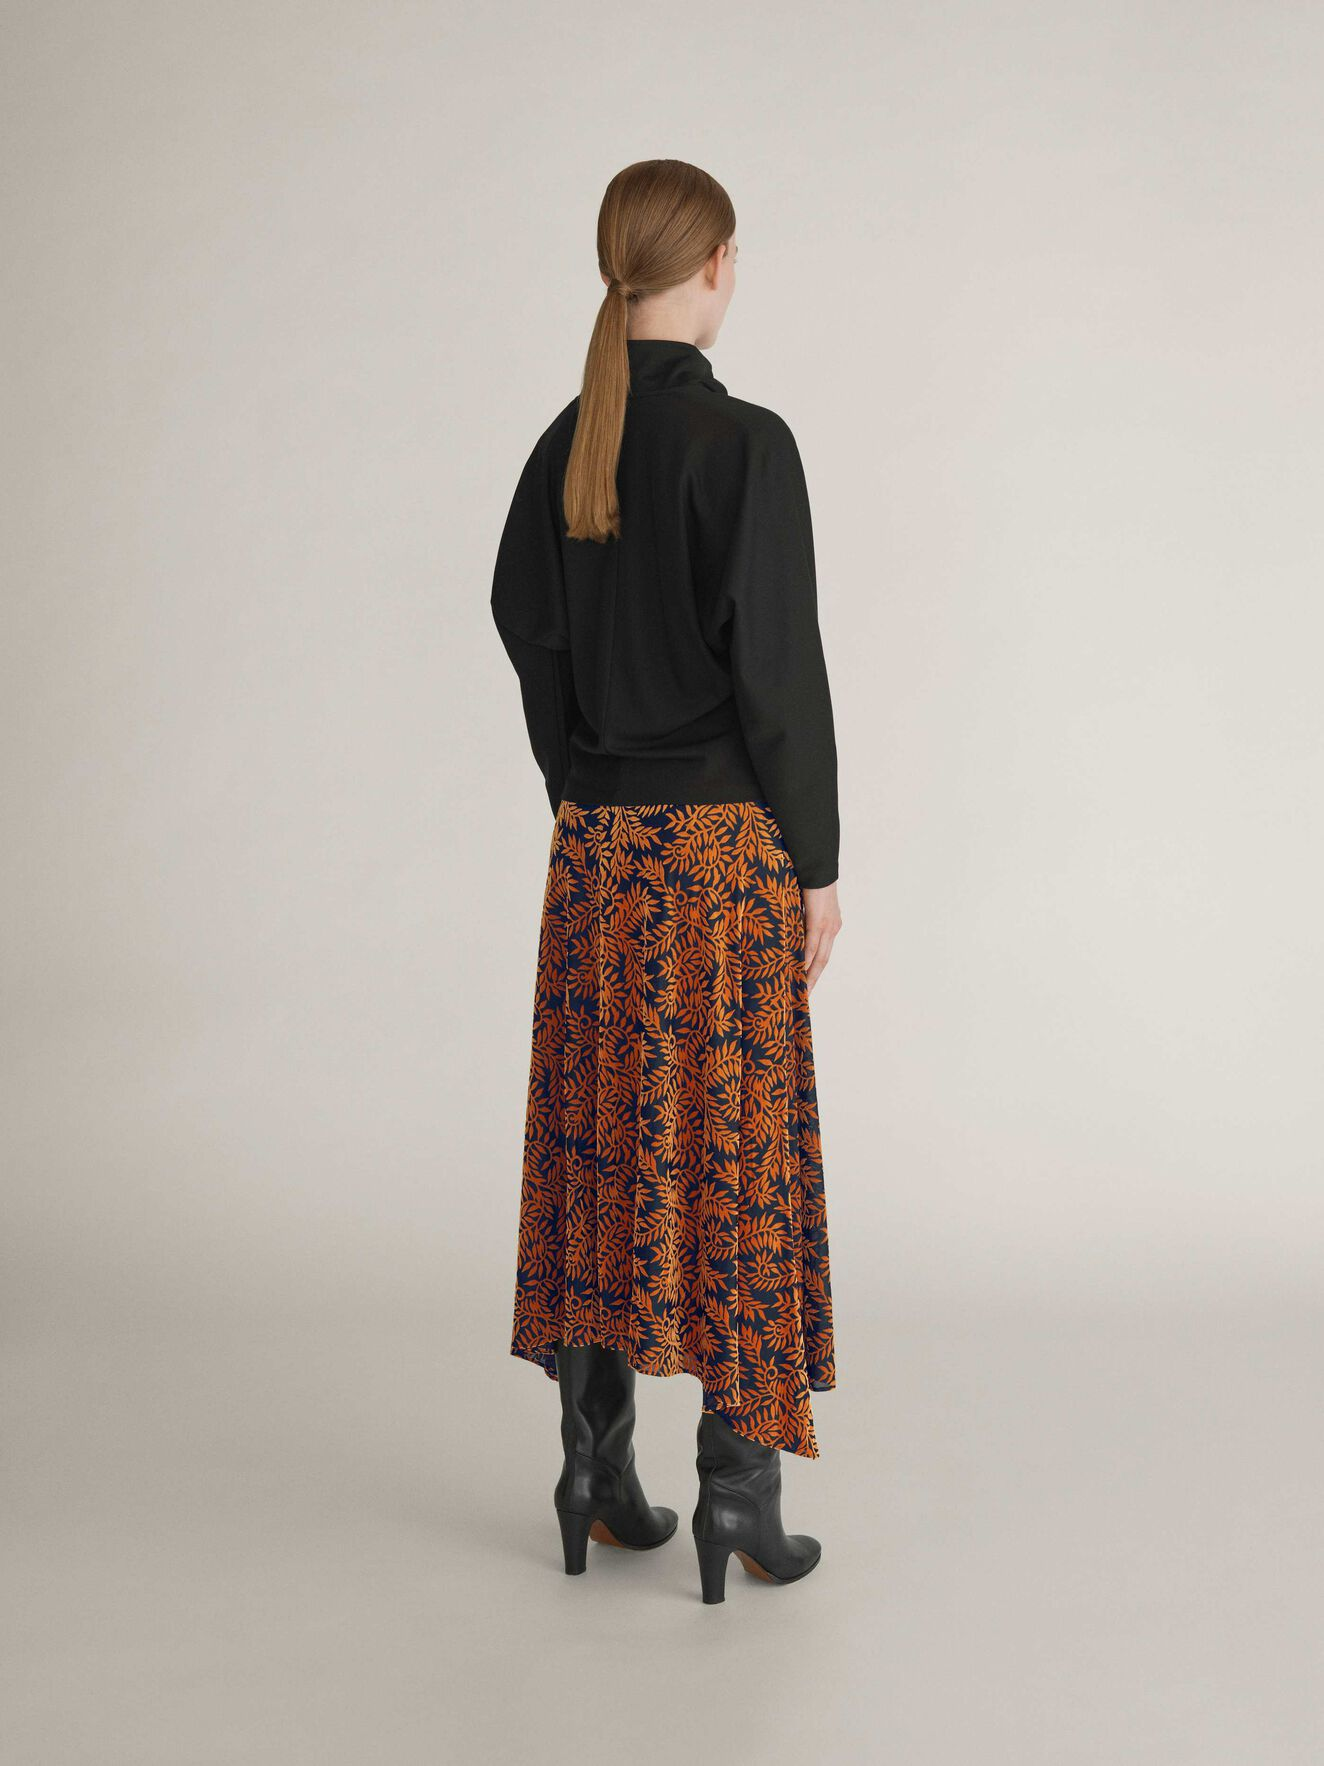 Jilena Top in Midnight Black from Tiger of Sweden